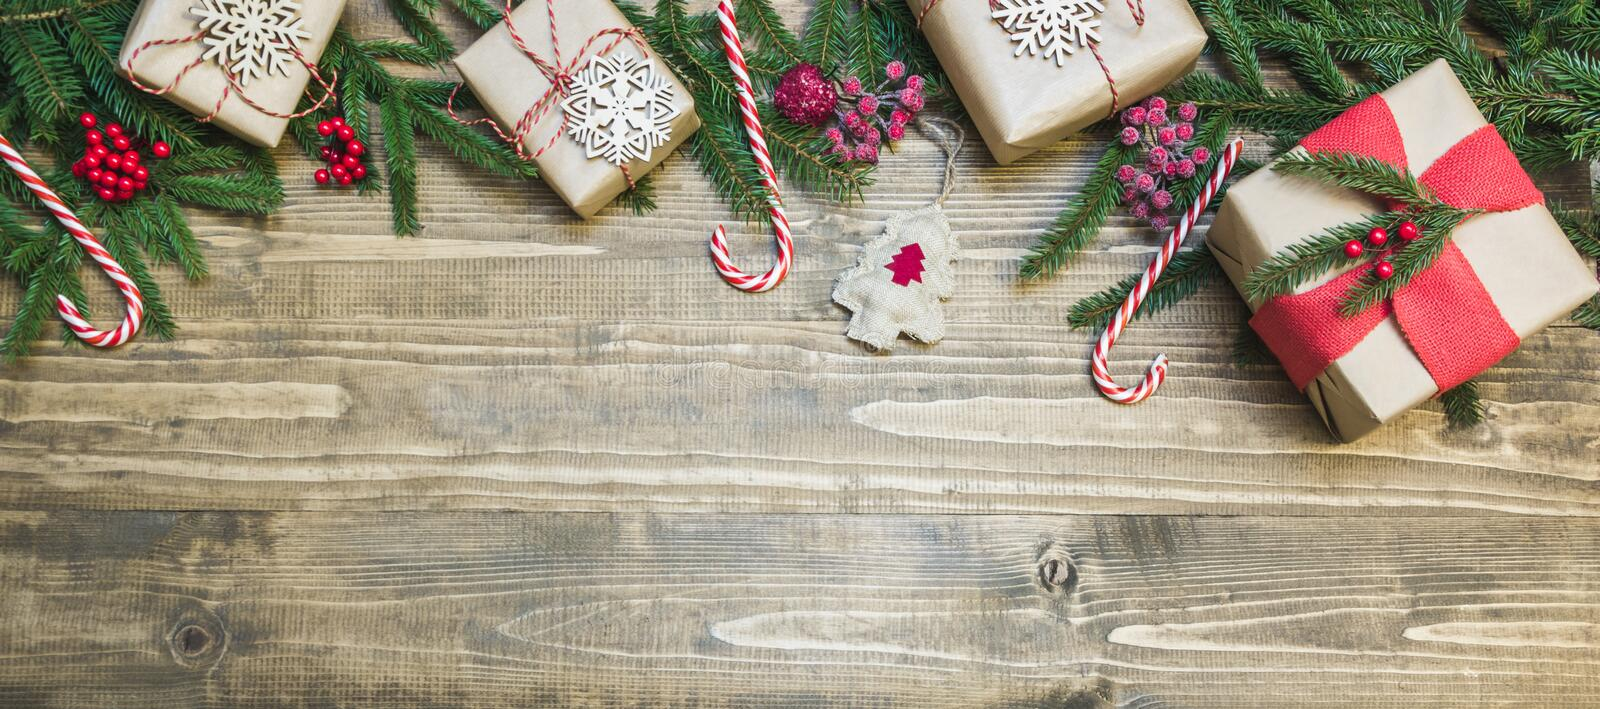 Christmas holiday banner - gifts, holly berries and decoration on wooden board. Holiday card. Top view. royalty free stock photos